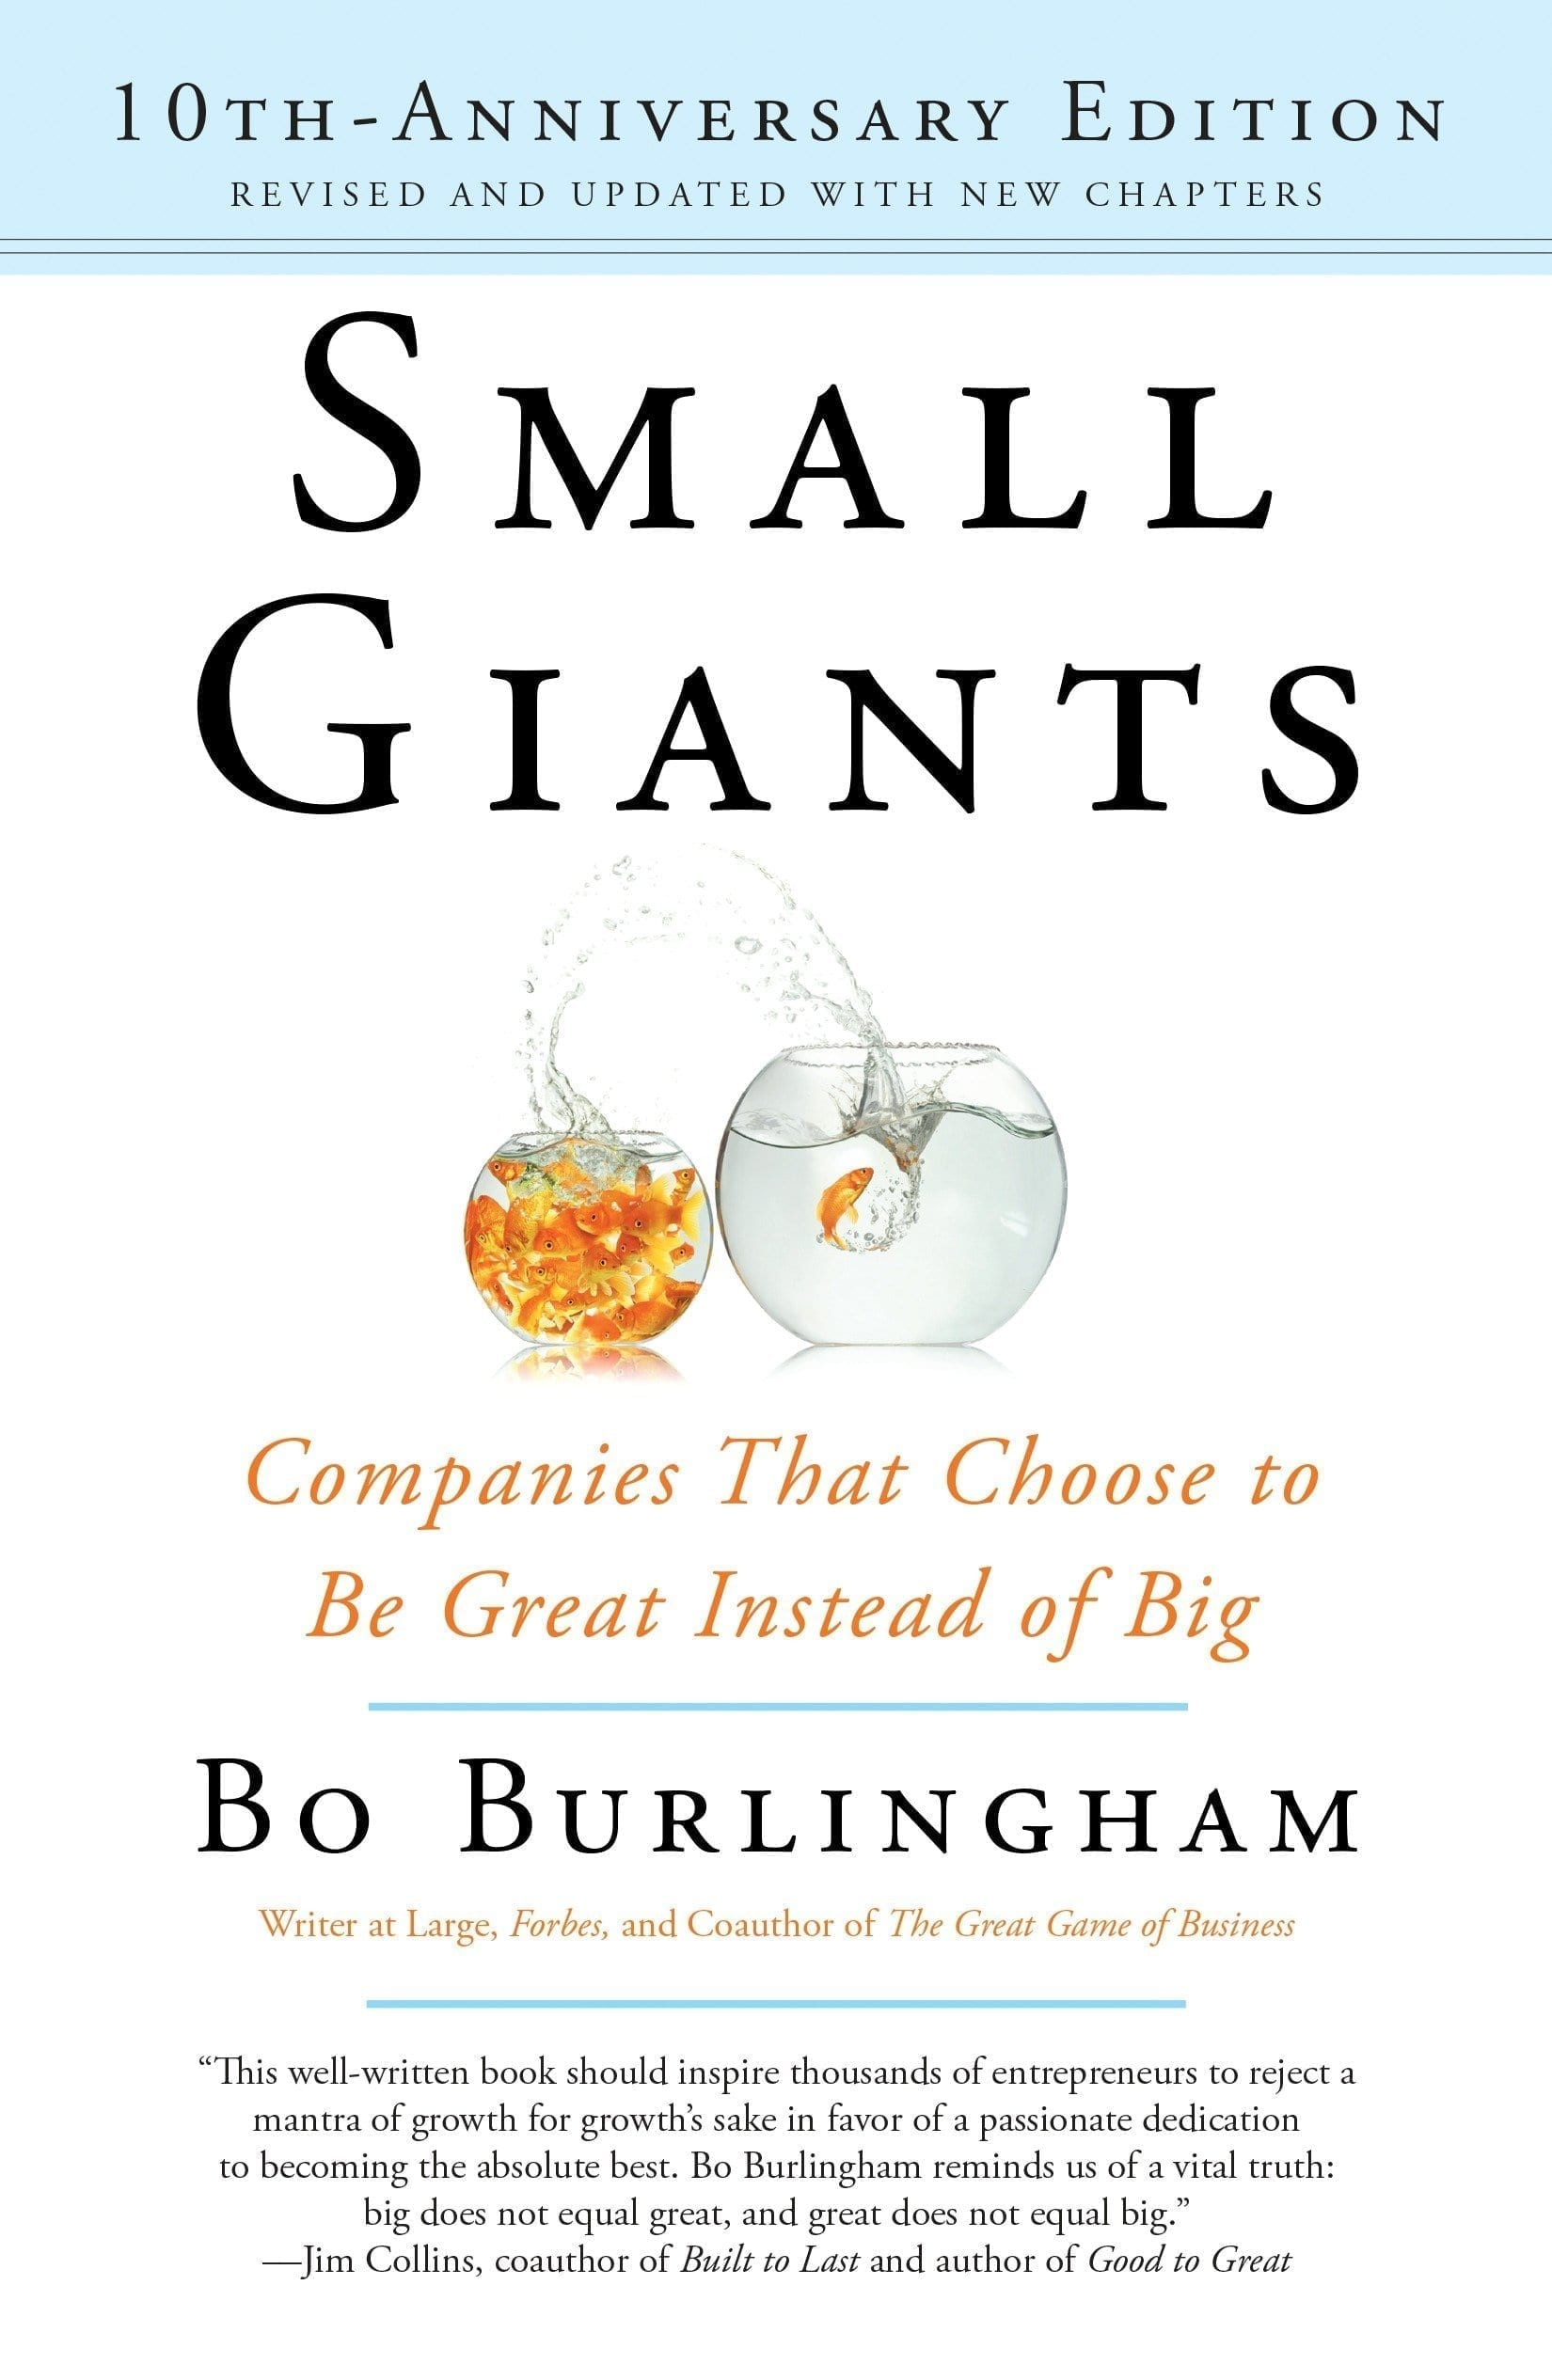 Giants by Bob Burlingham